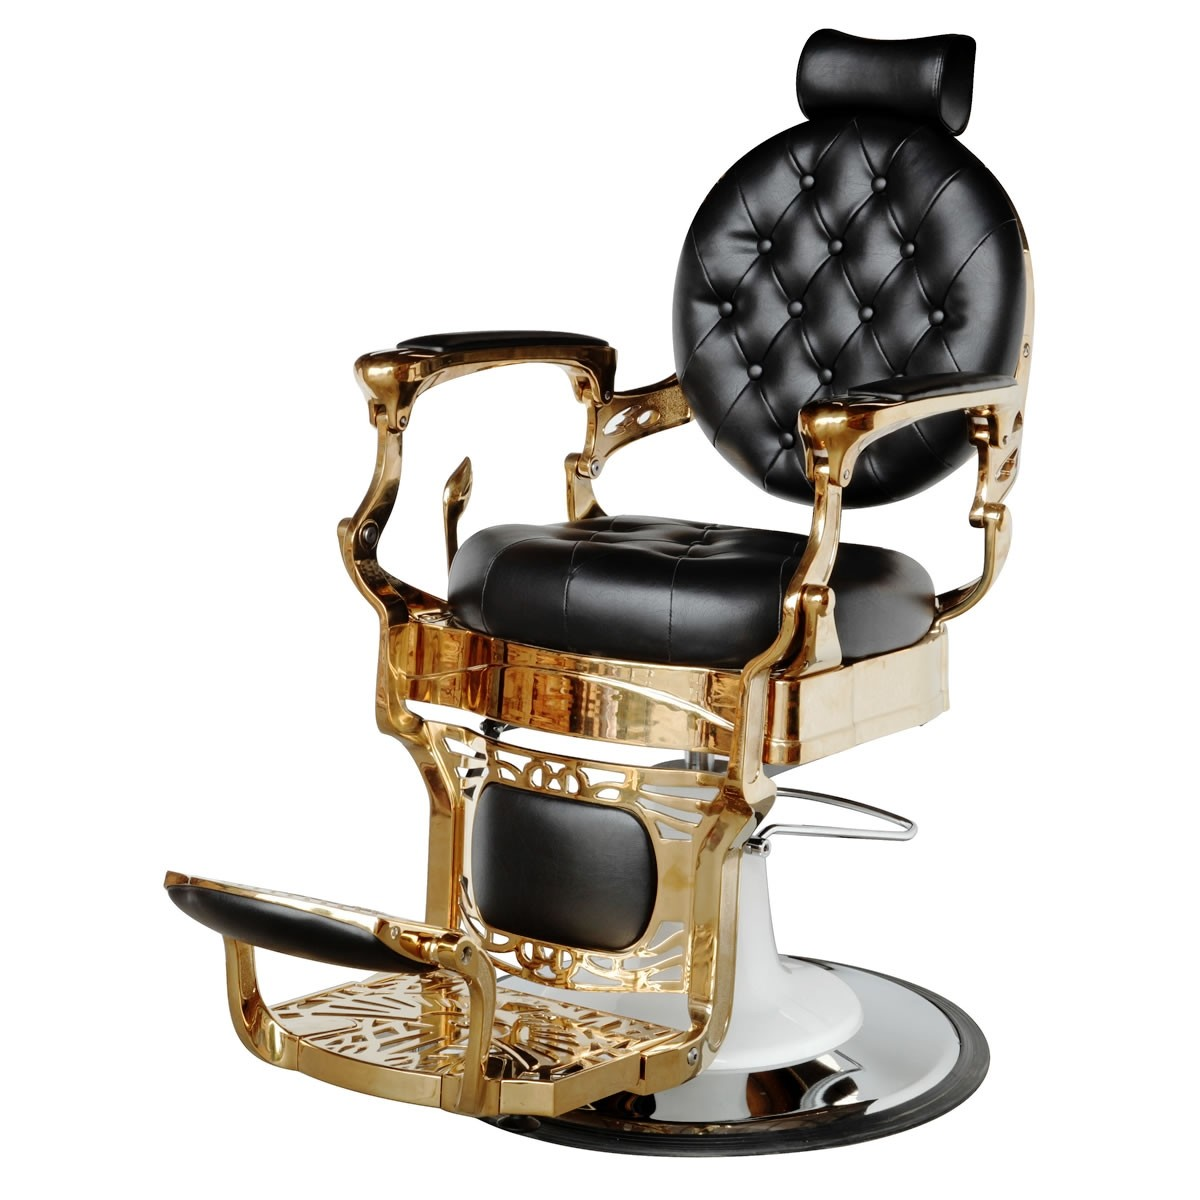 """THEODORE"" Golden Barber Chair - ""THEODORE"" Golden Barber Shop Chair, ""THEODORE"" Barbering Chairs in Gold Color"